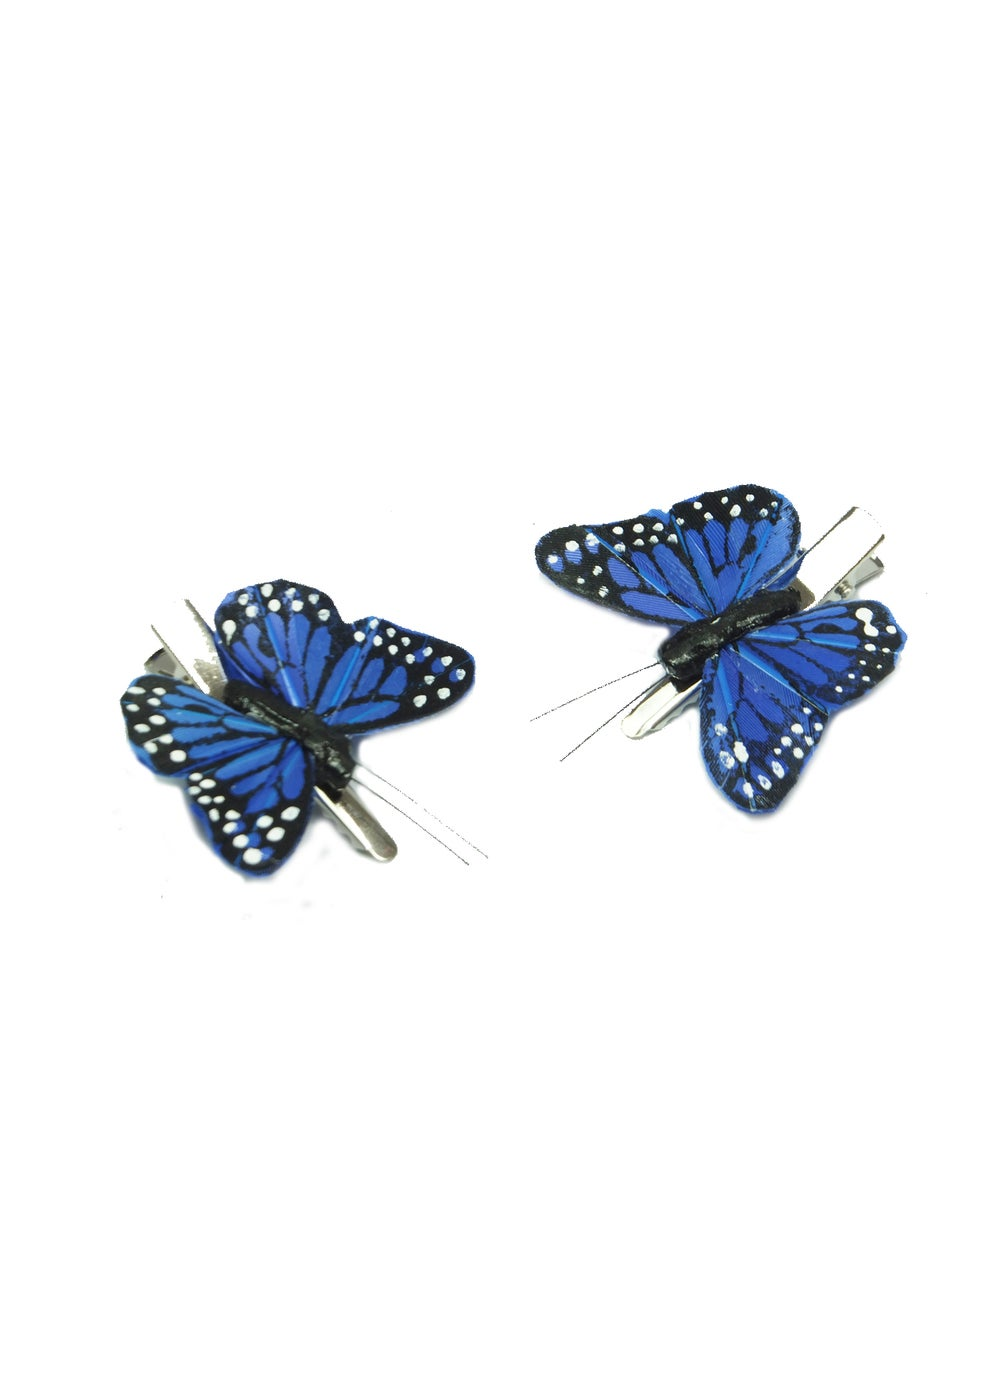 Image of Hand Painted Monarch Butterfly Clips - Cobalt